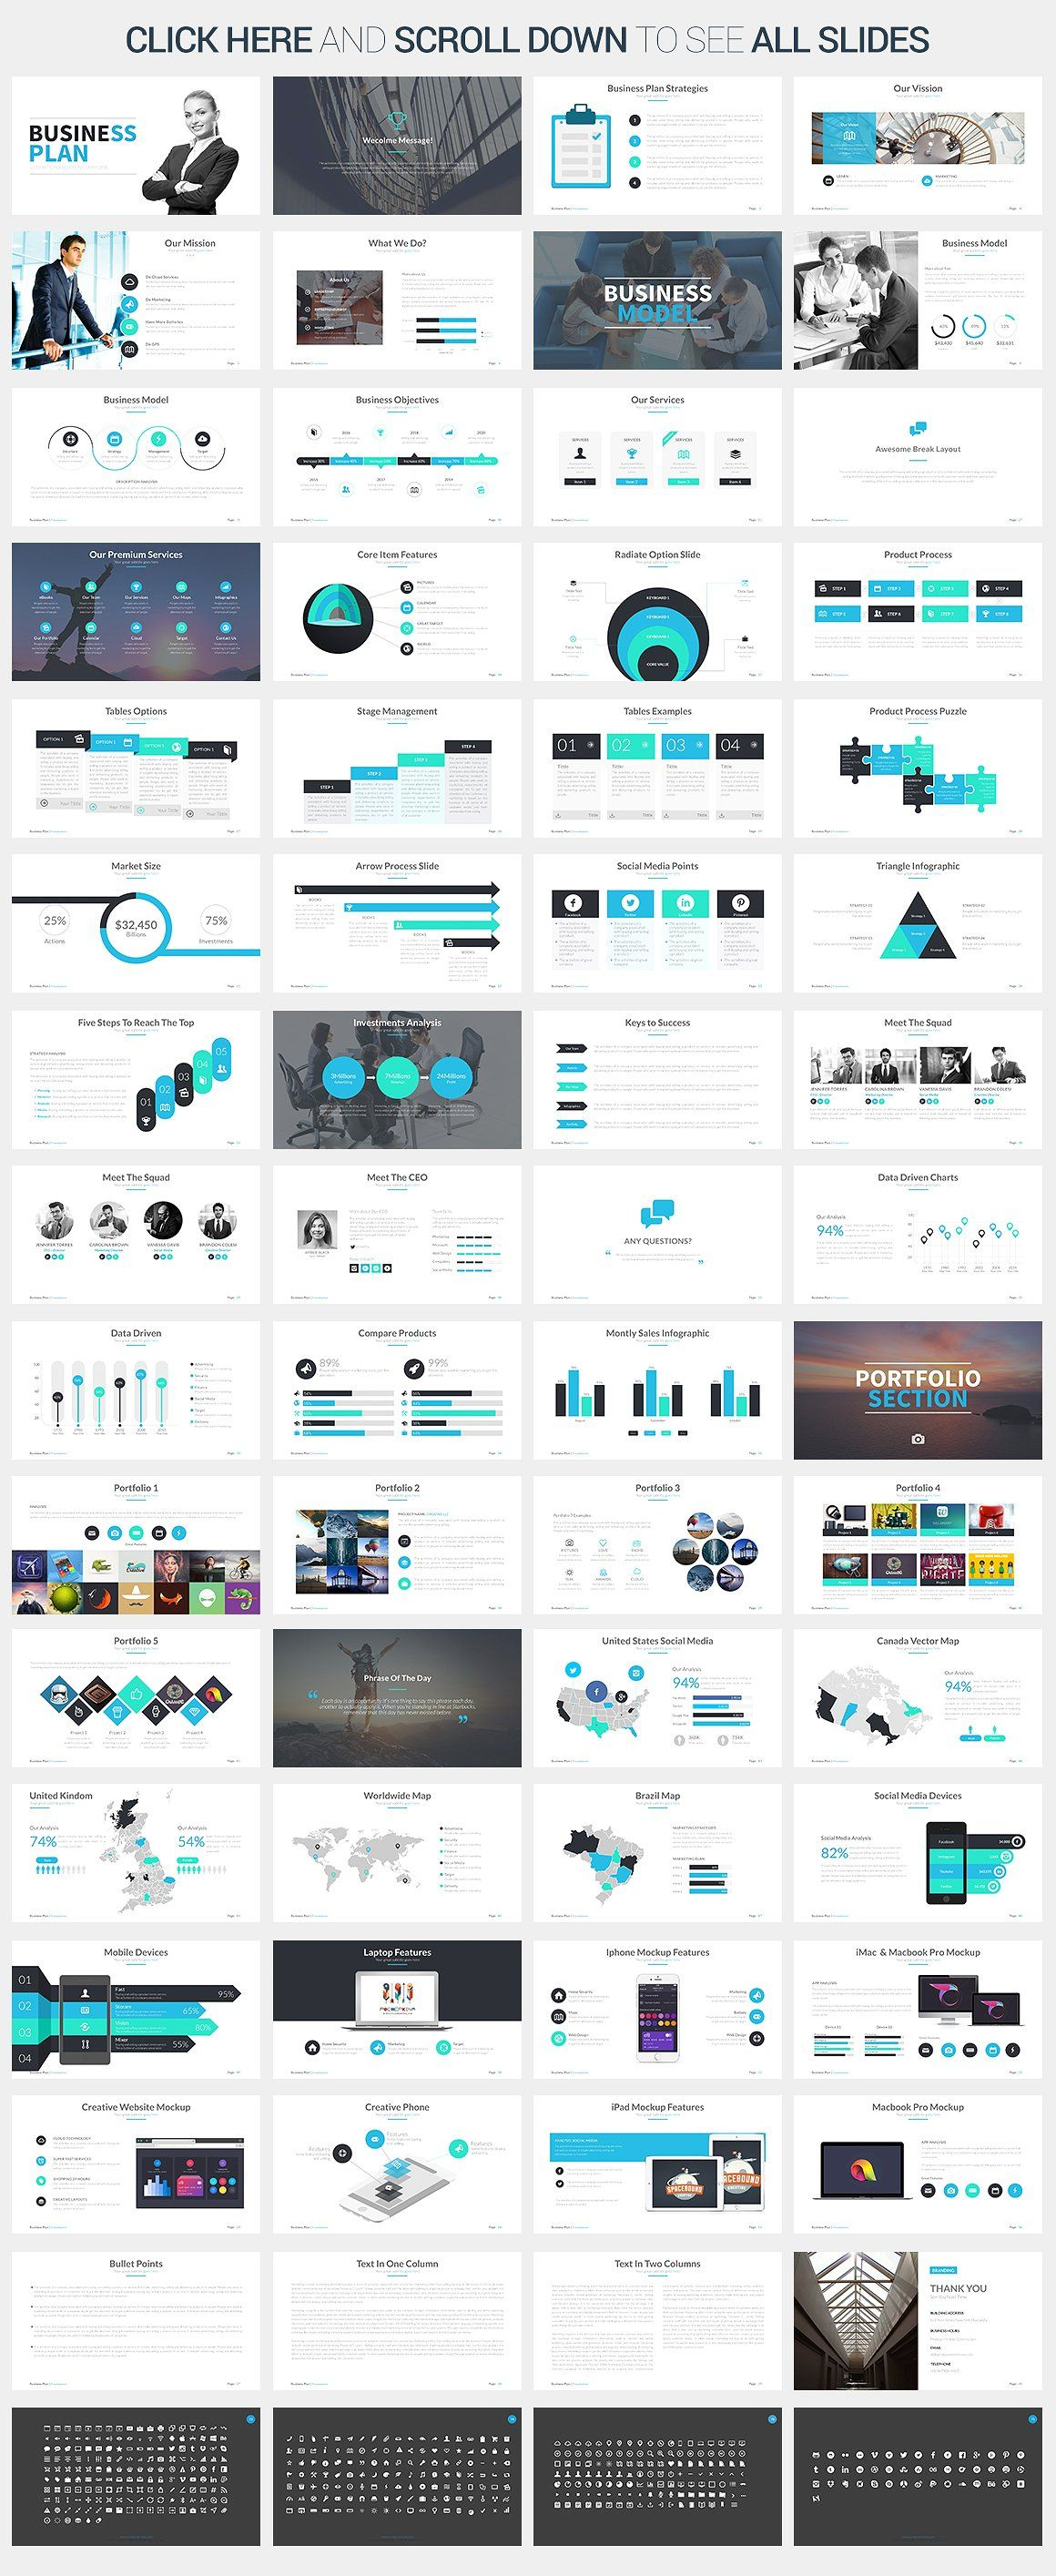 Business plan google slides template business tools by aleksandra business plan google slides template by slidepro on creativemarket wajeb